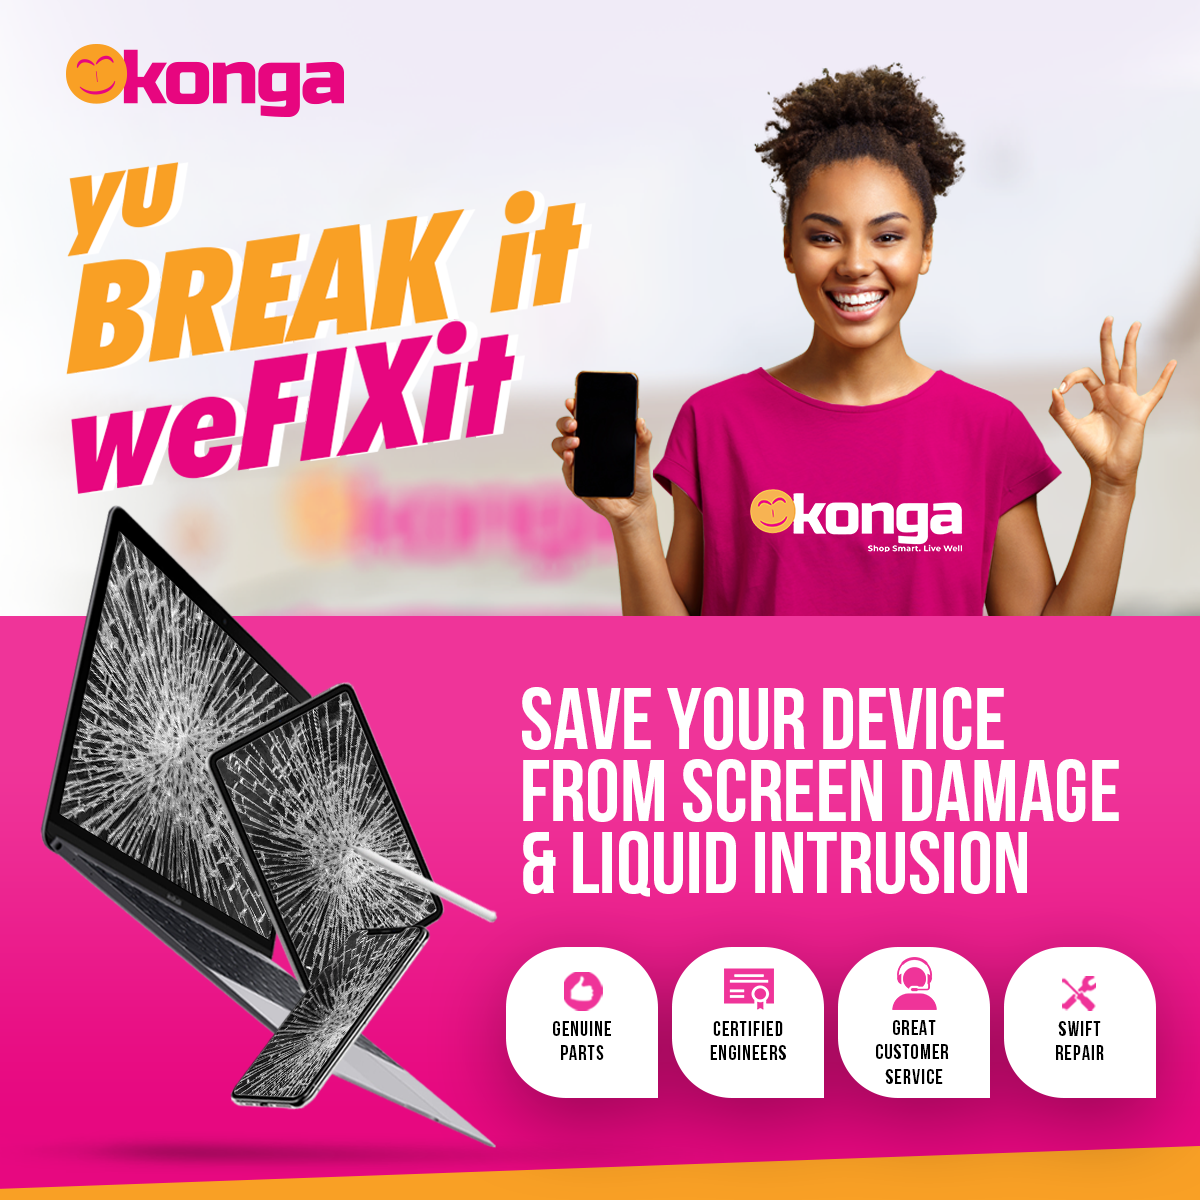 Konga Takes After-Sales Support To New Heights With Yu Break It; We Fix It